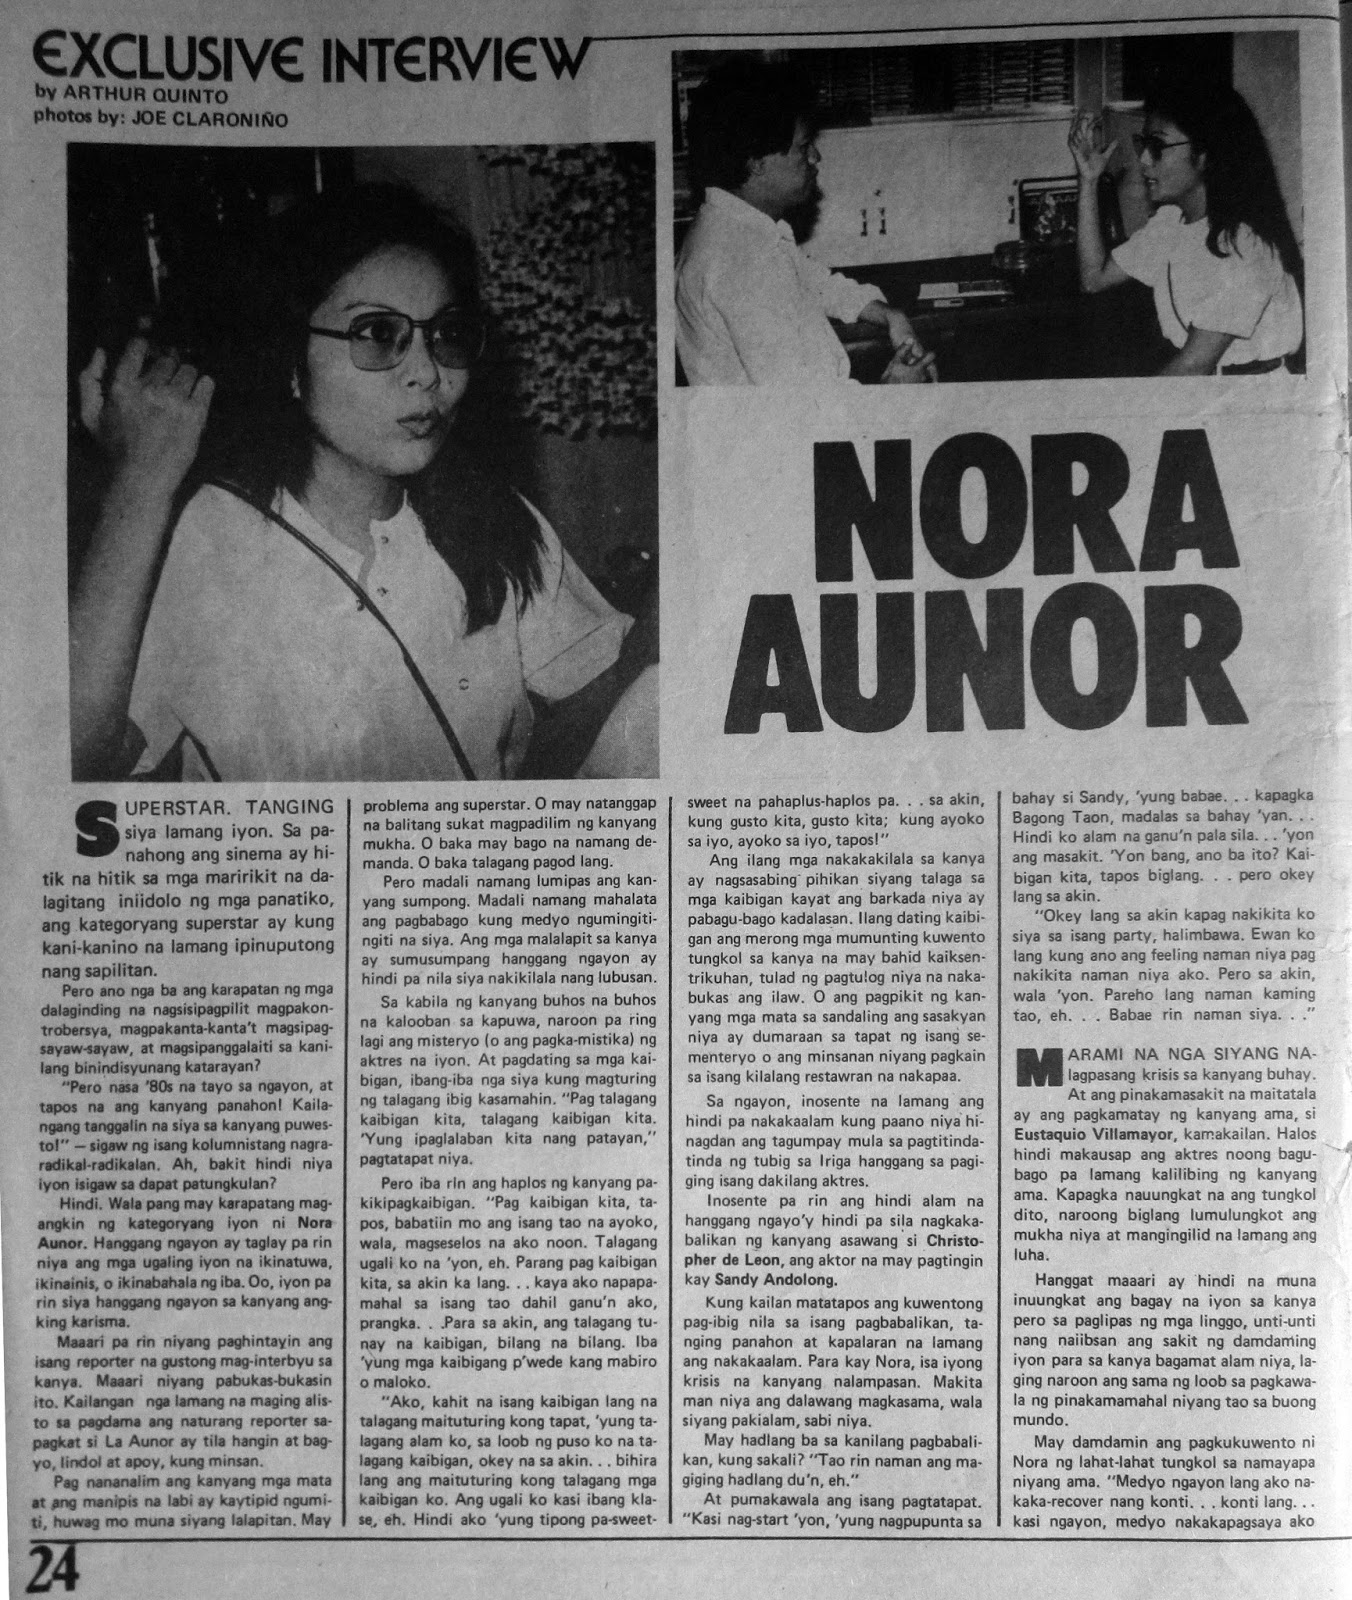 Exclusive Interviews Pictures More: PELIKULA, ATBP.: EXCLUSIVE INTERVIEW: NORA AUNOR (by